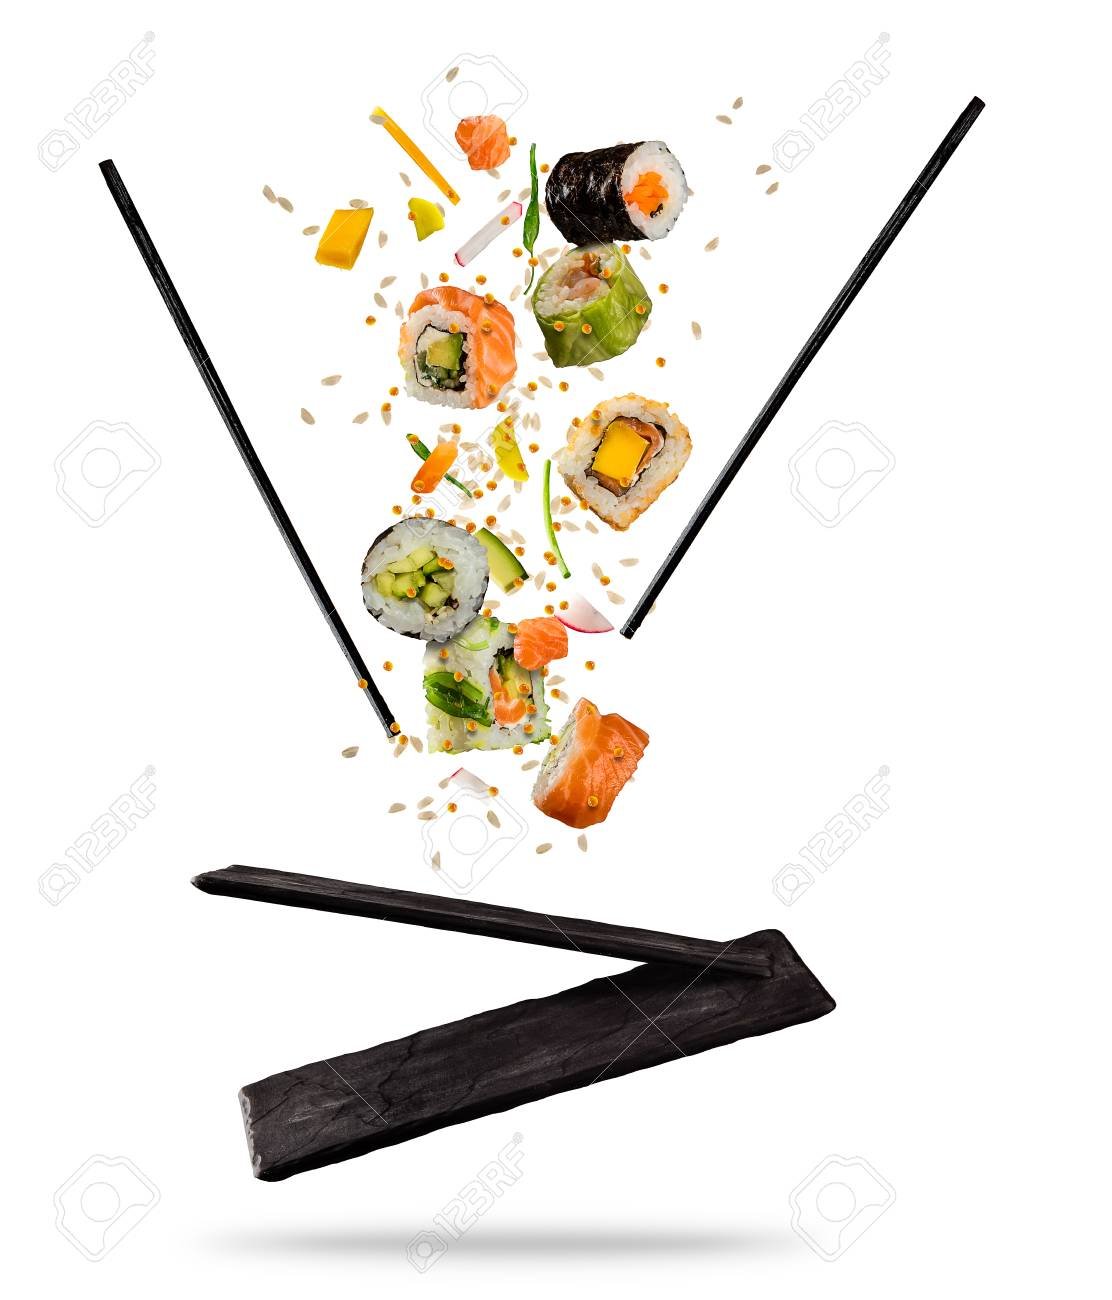 Flying pieces of sushi with wooden chopsticks and stone plate, isolated on white background. Flying food and motion concept. Very high resolution image - 93386830